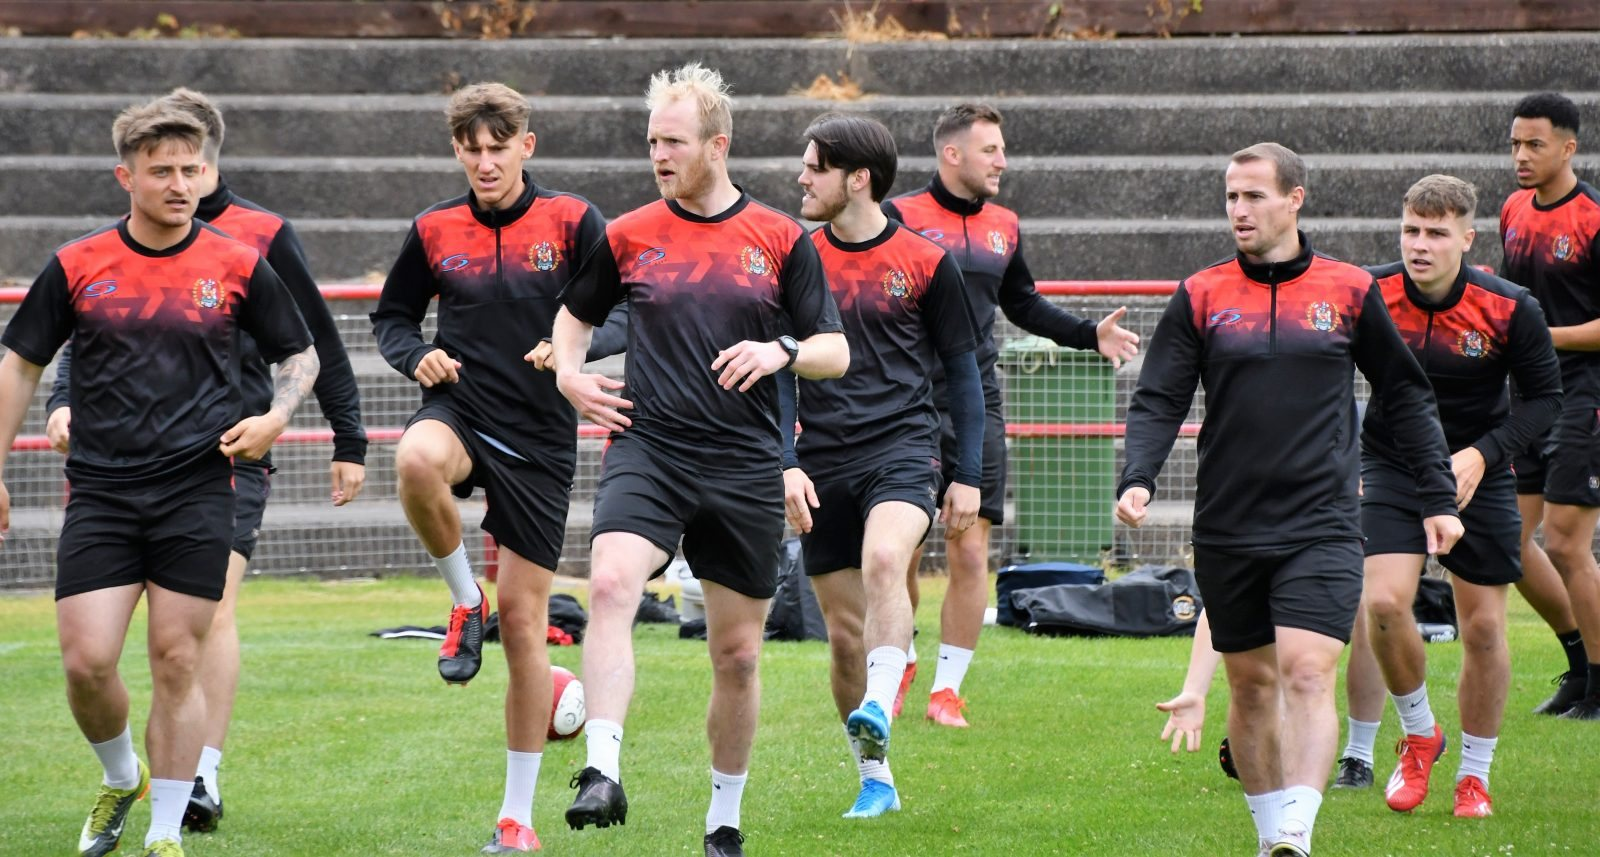 Reds Festival of Football – The First team training